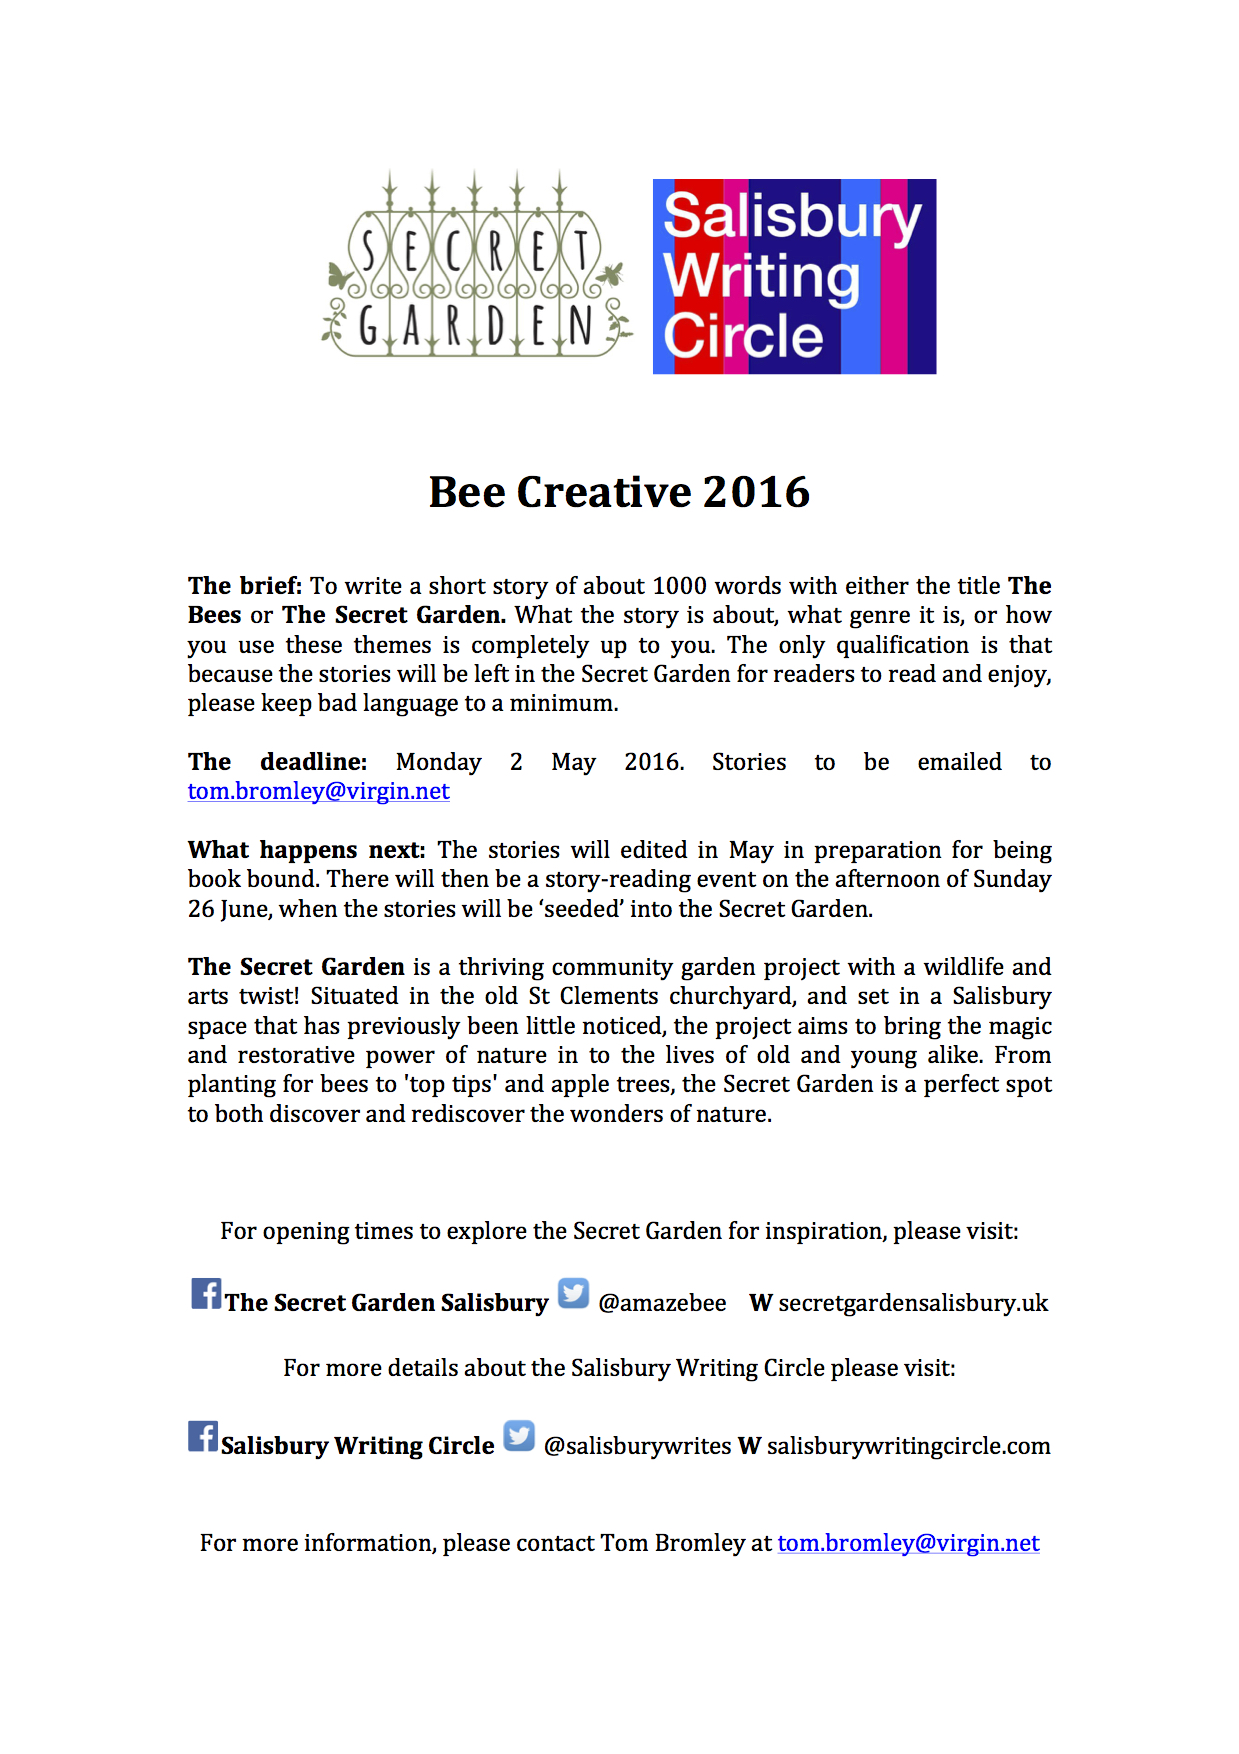 Bee Creative Brief copy